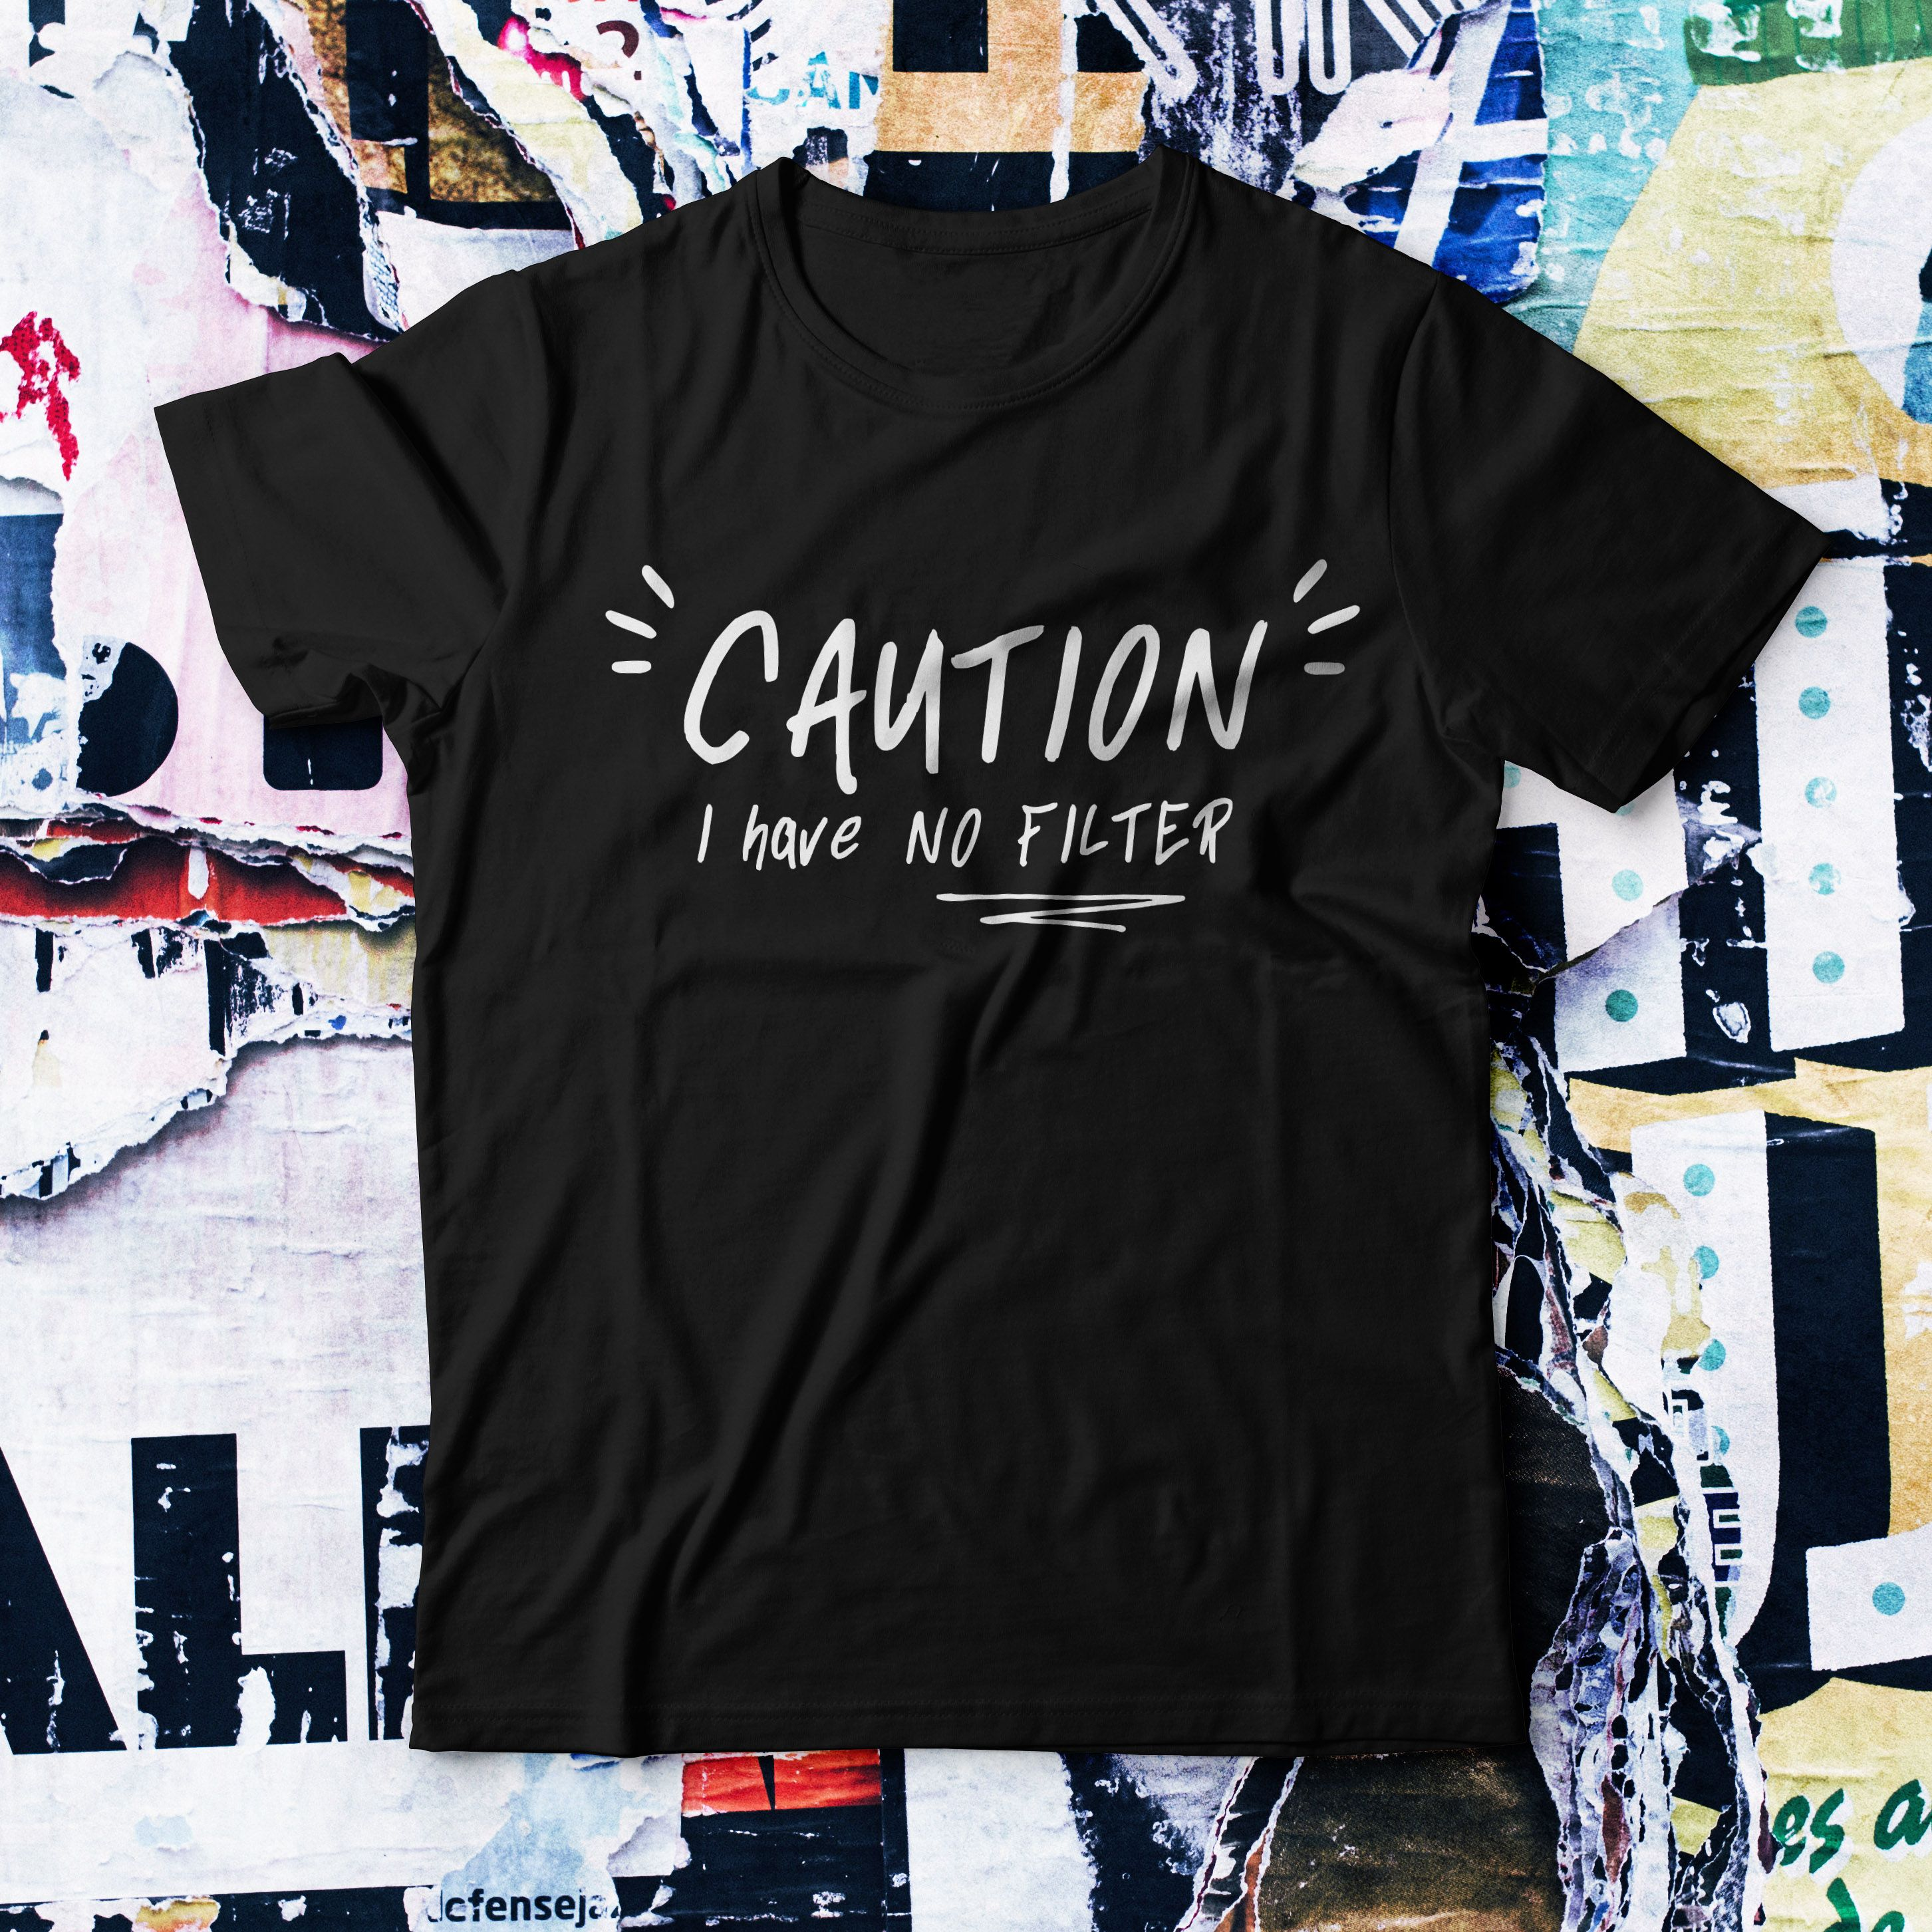 Caution I Have No Filter T Shirt Shirts T Shirts With Sayings T Shirt